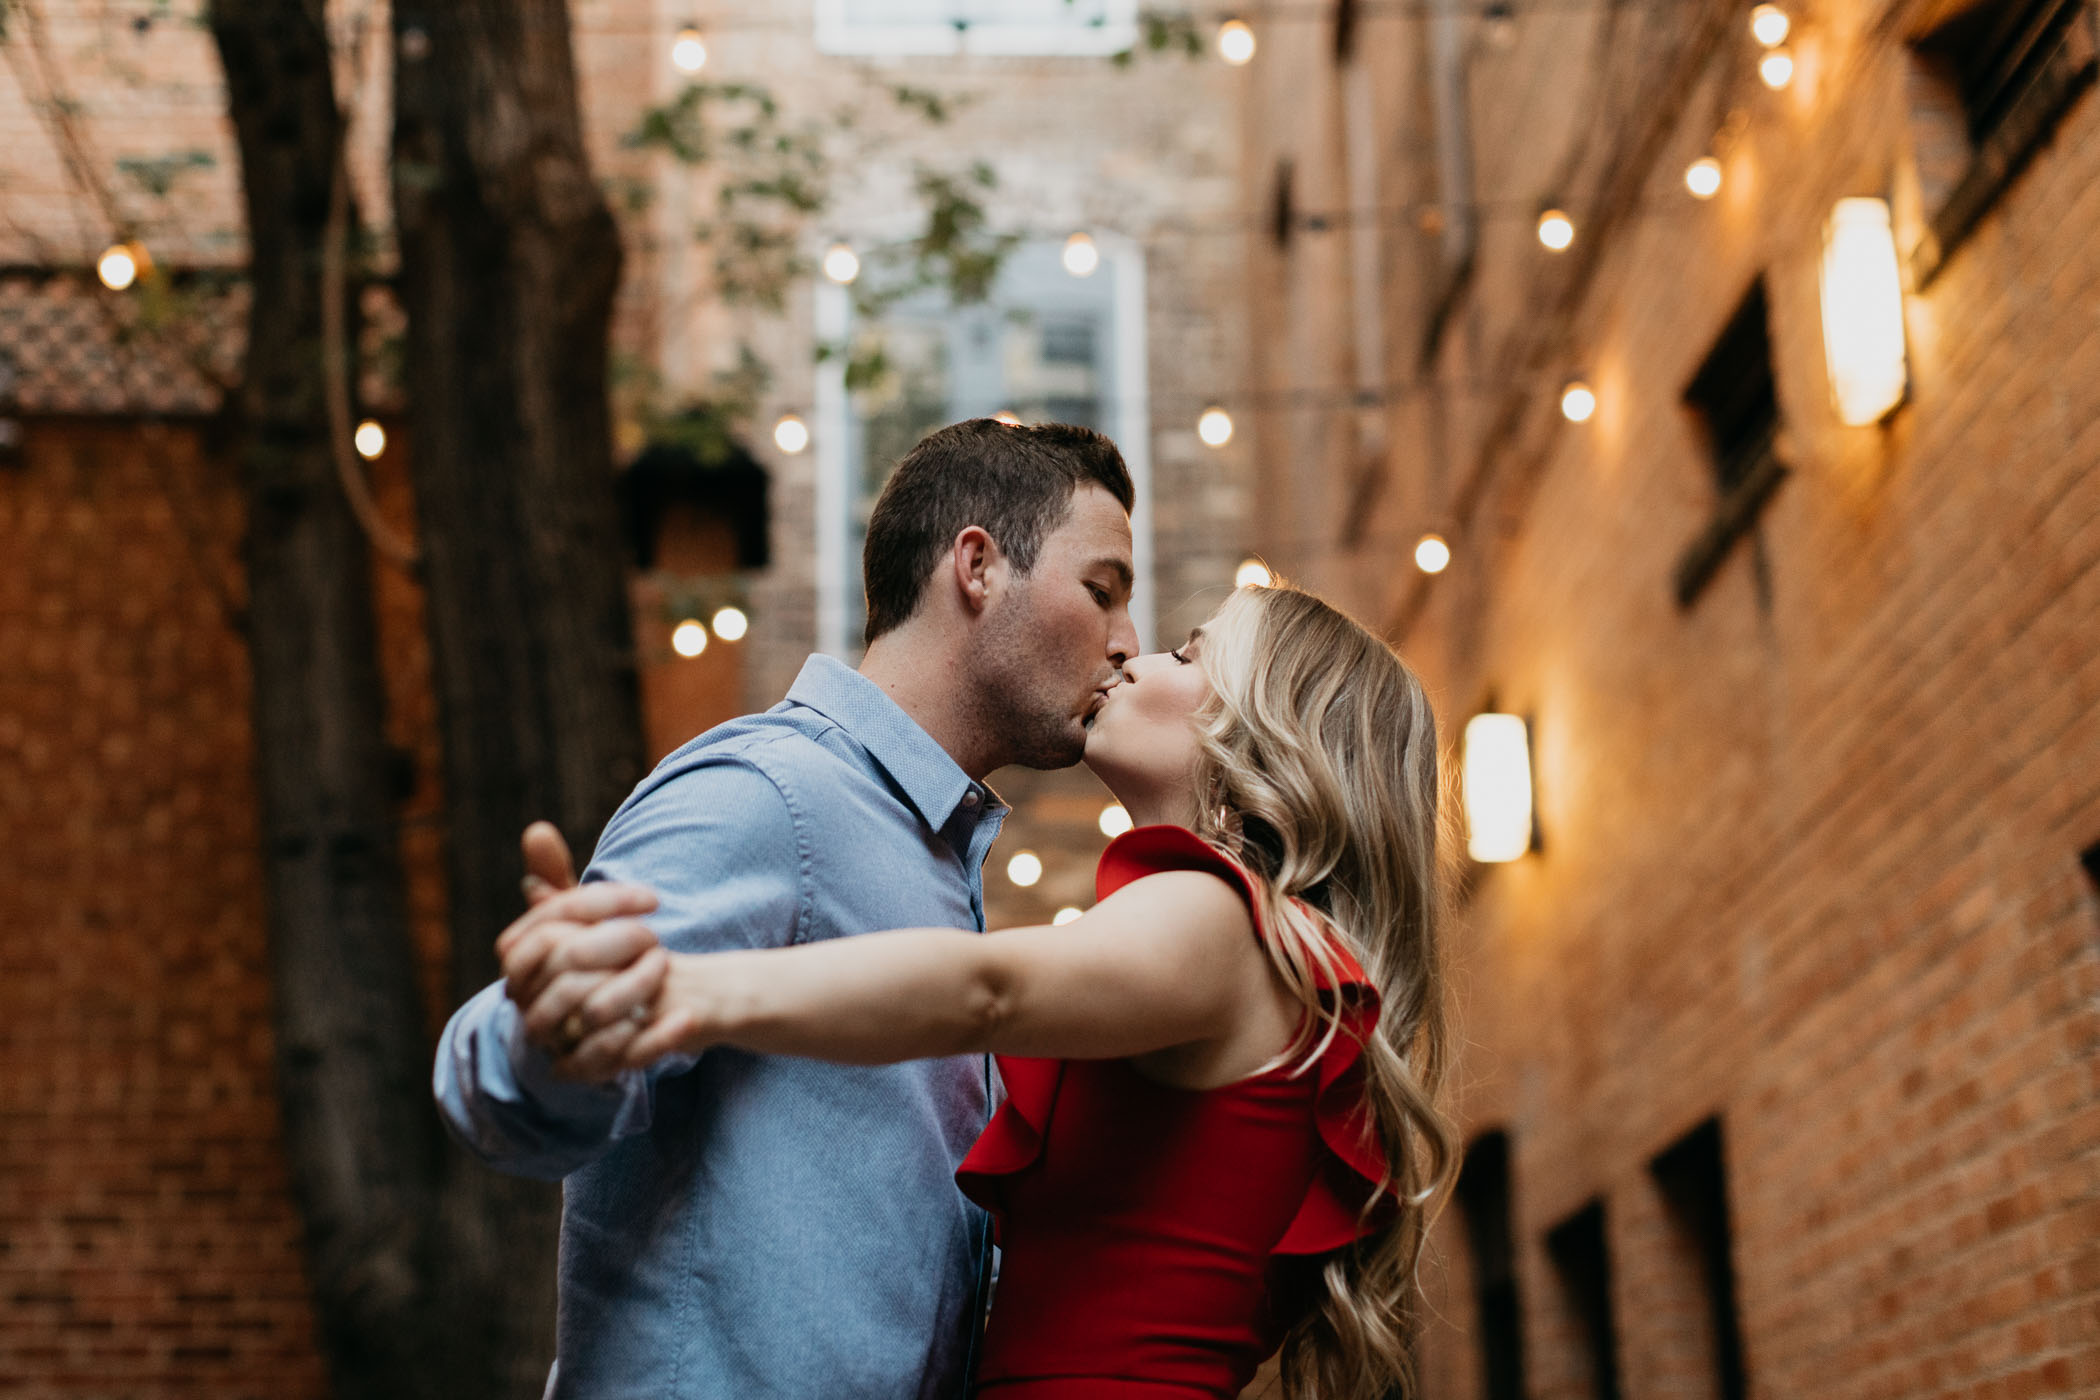 Fort Worth court yard engagement photos with string lights